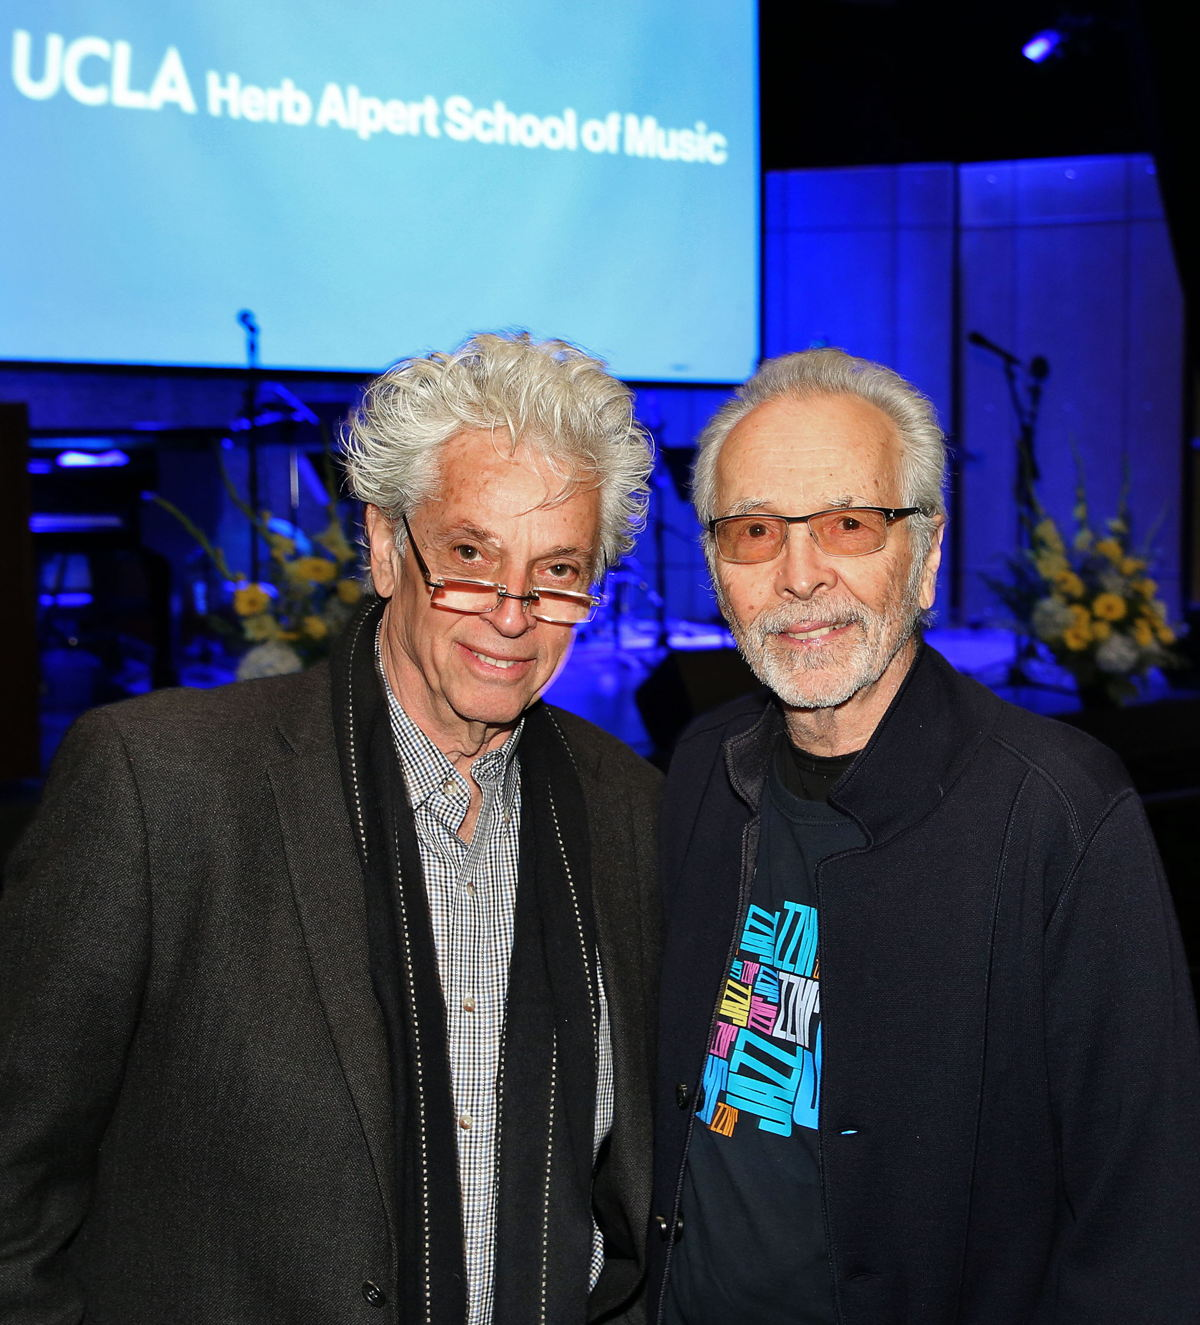 Pictured right, musician, label exec and co-founder of the Herb Alpert Foundation, Herb Alpert welcomed architect/acoustician and co-founding partner of WSDG, John Storyk to the opening of the new Lani Hall on the UCLA campus